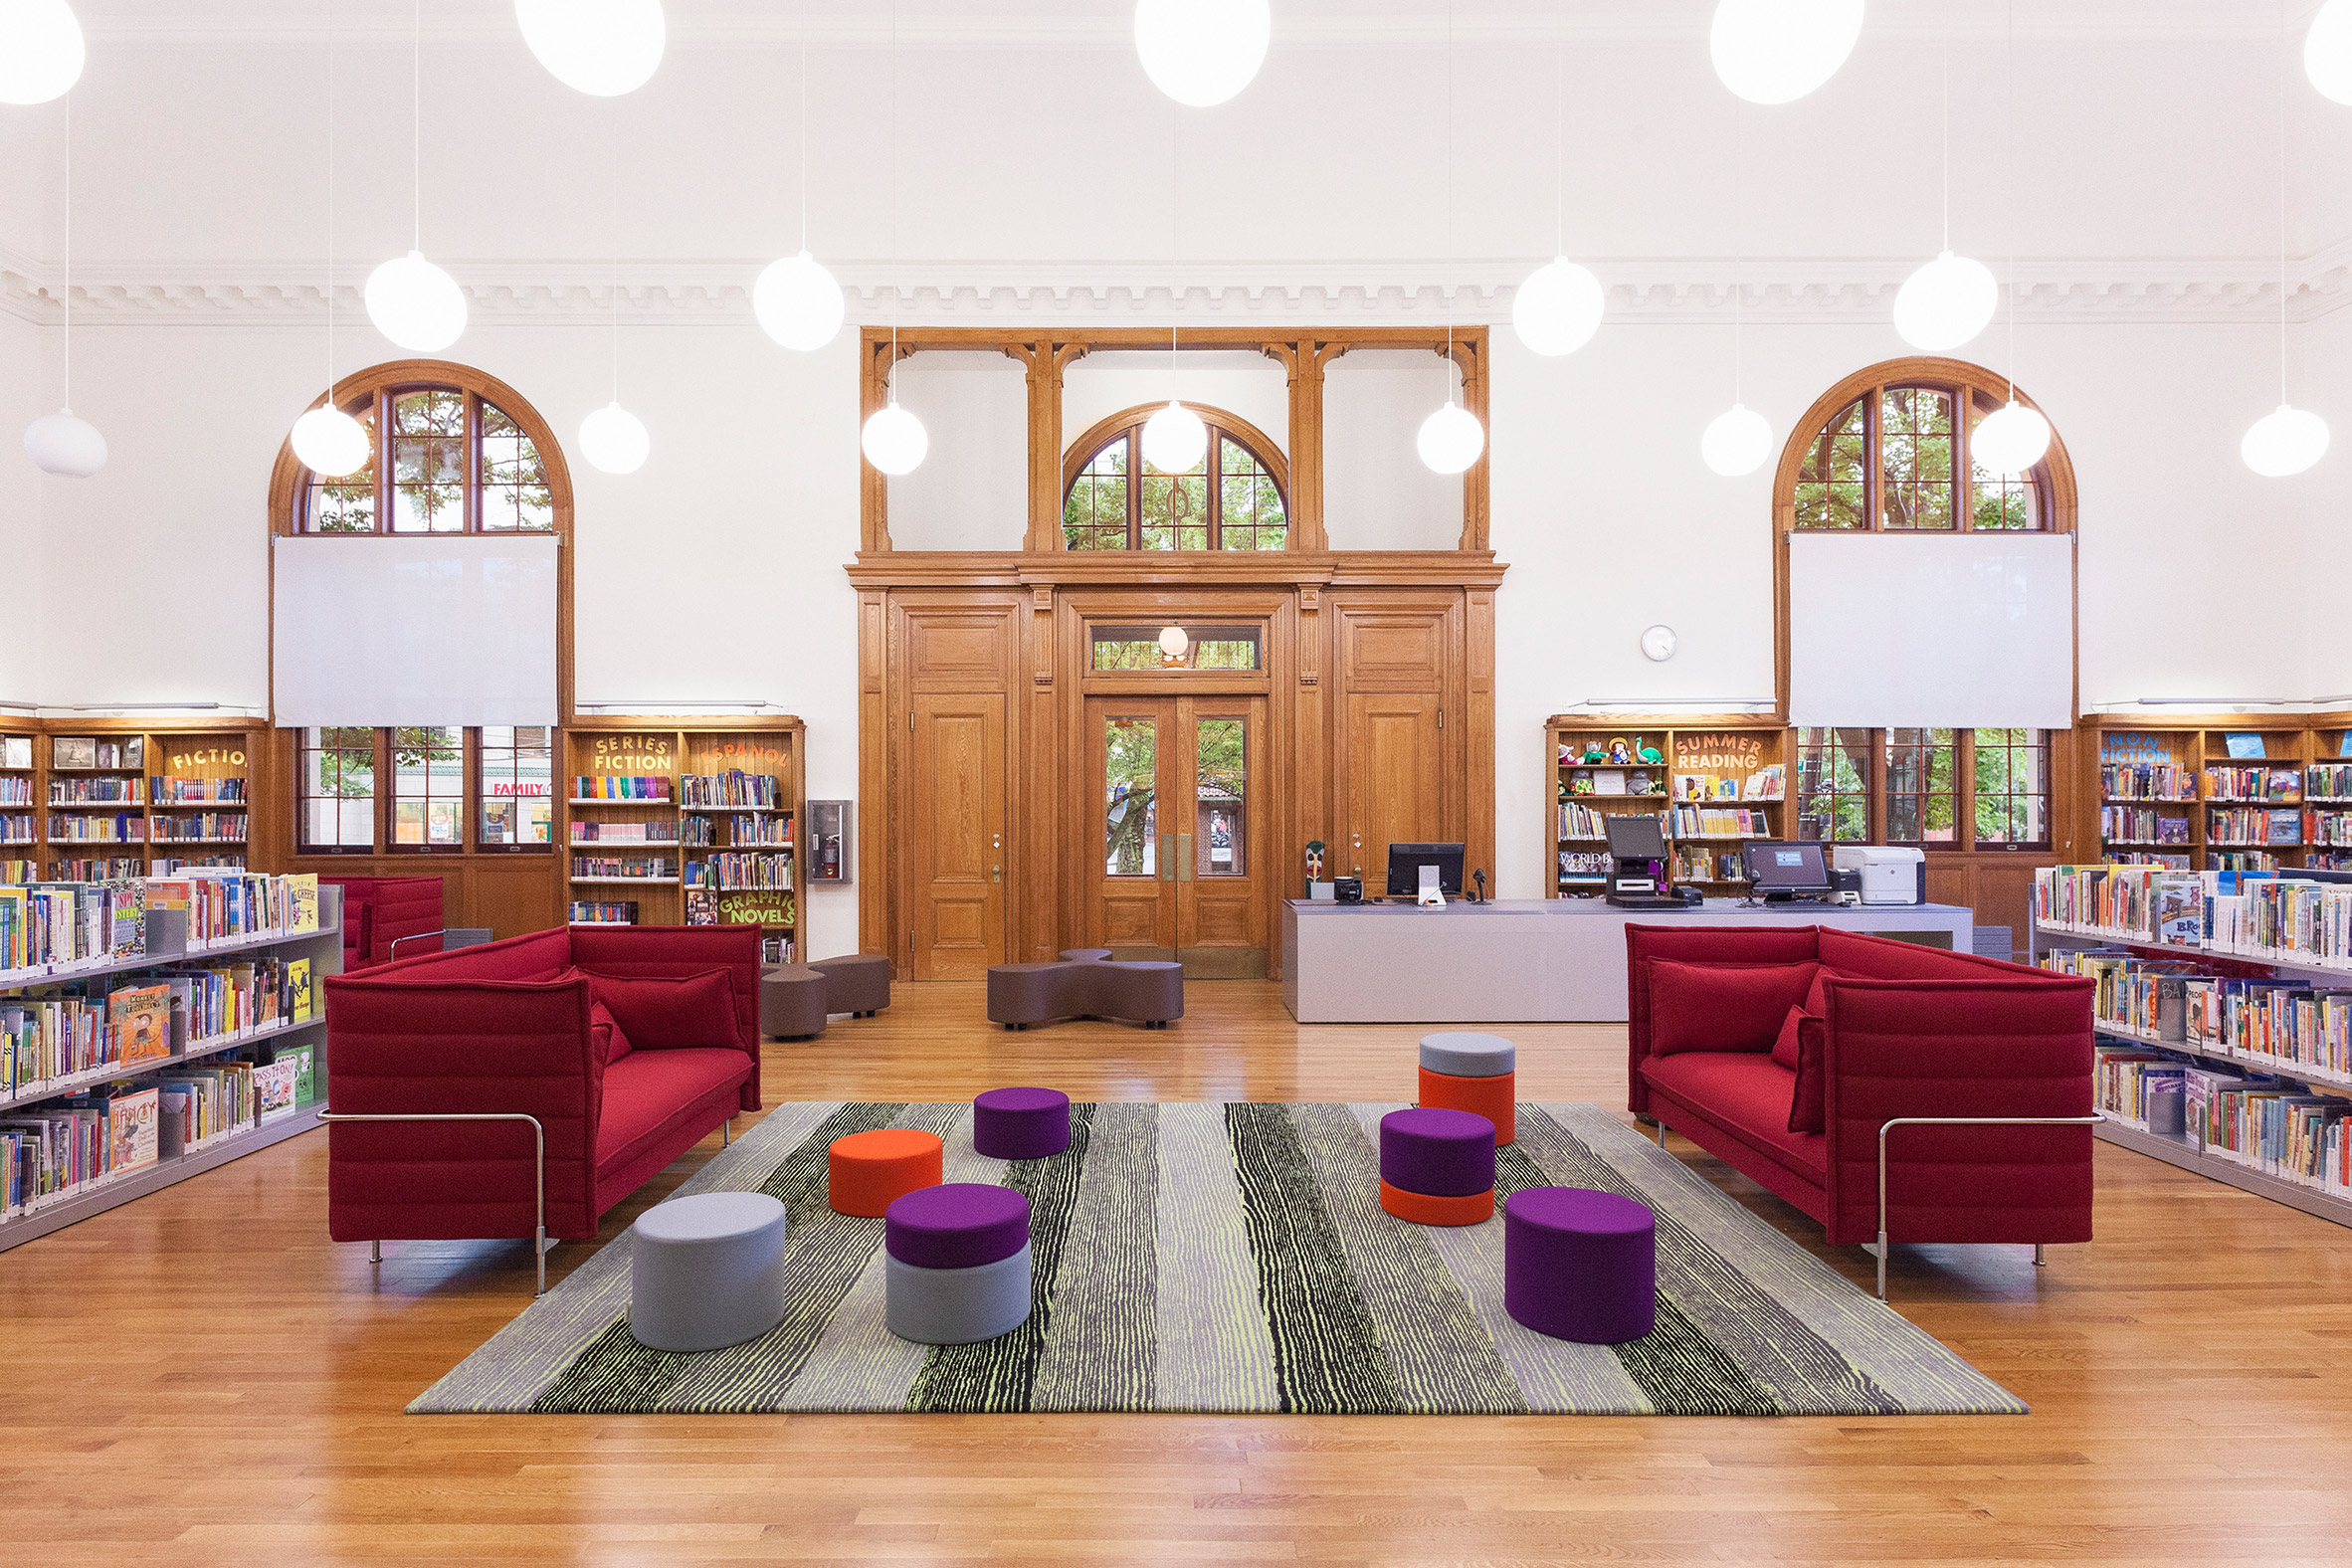 Andrew Berman Architect adds timber-framed extension to old Staten Island library